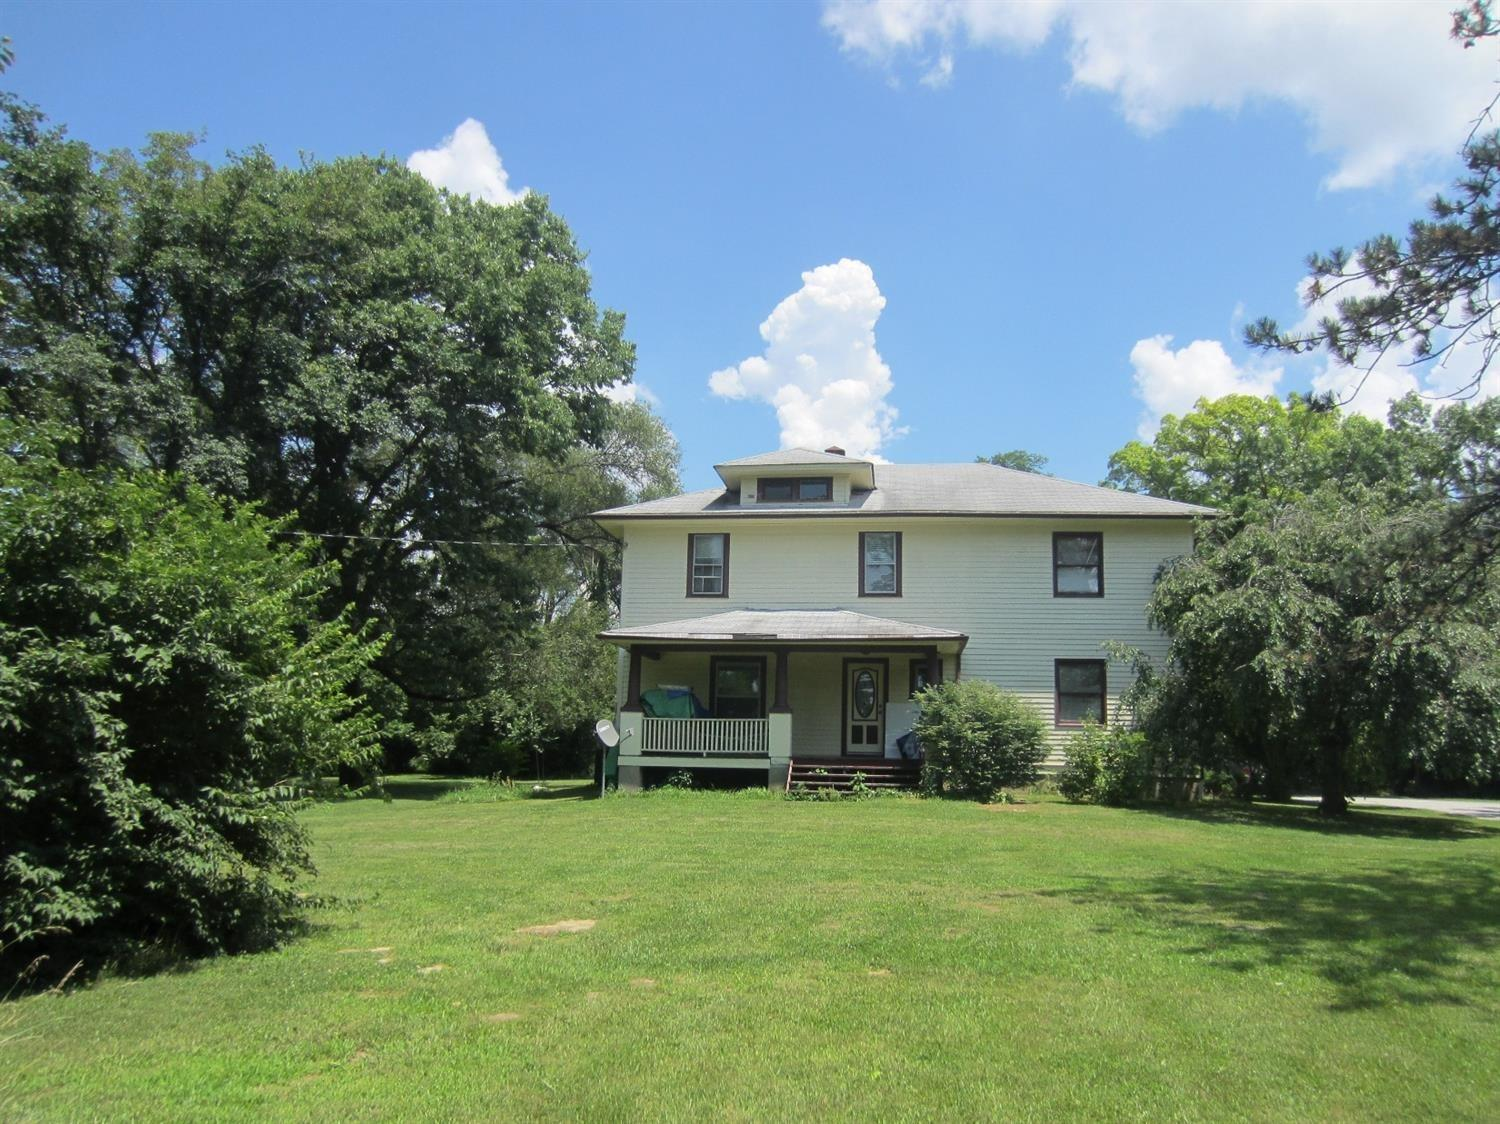 2060 Eaton Rd St. Clair Twp., OH